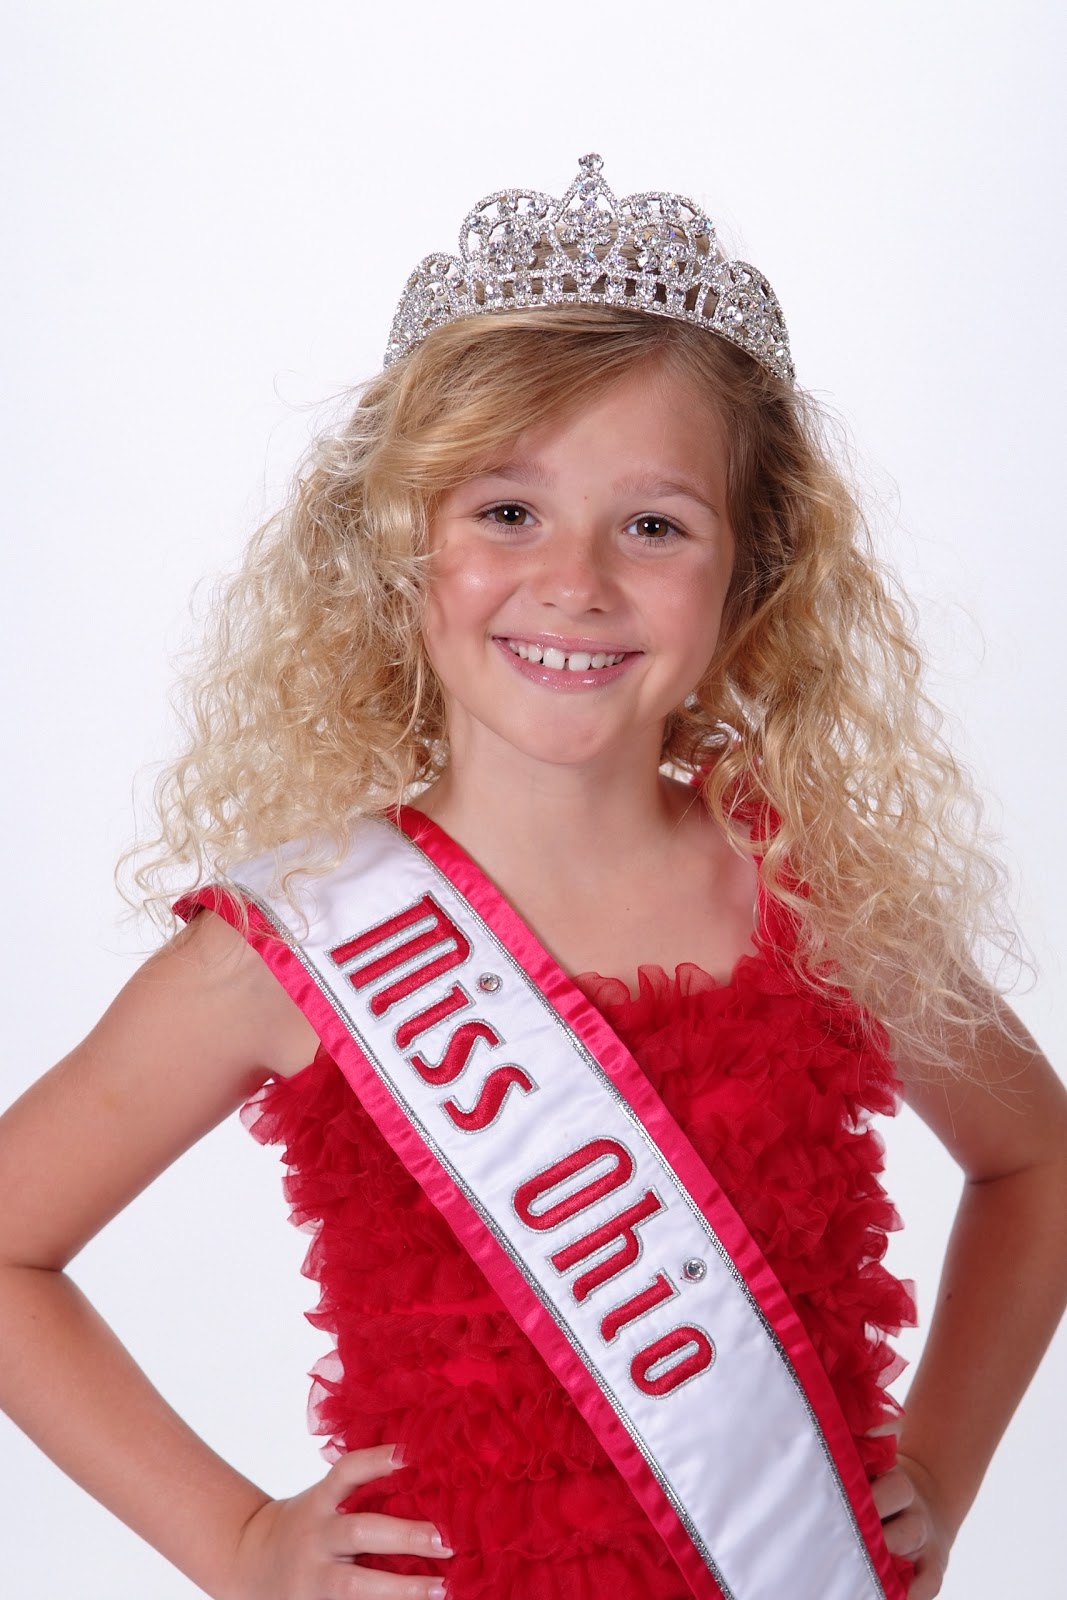 ... since I was crowned the National American Miss Jr. Pre-Teen Queen Ohio.